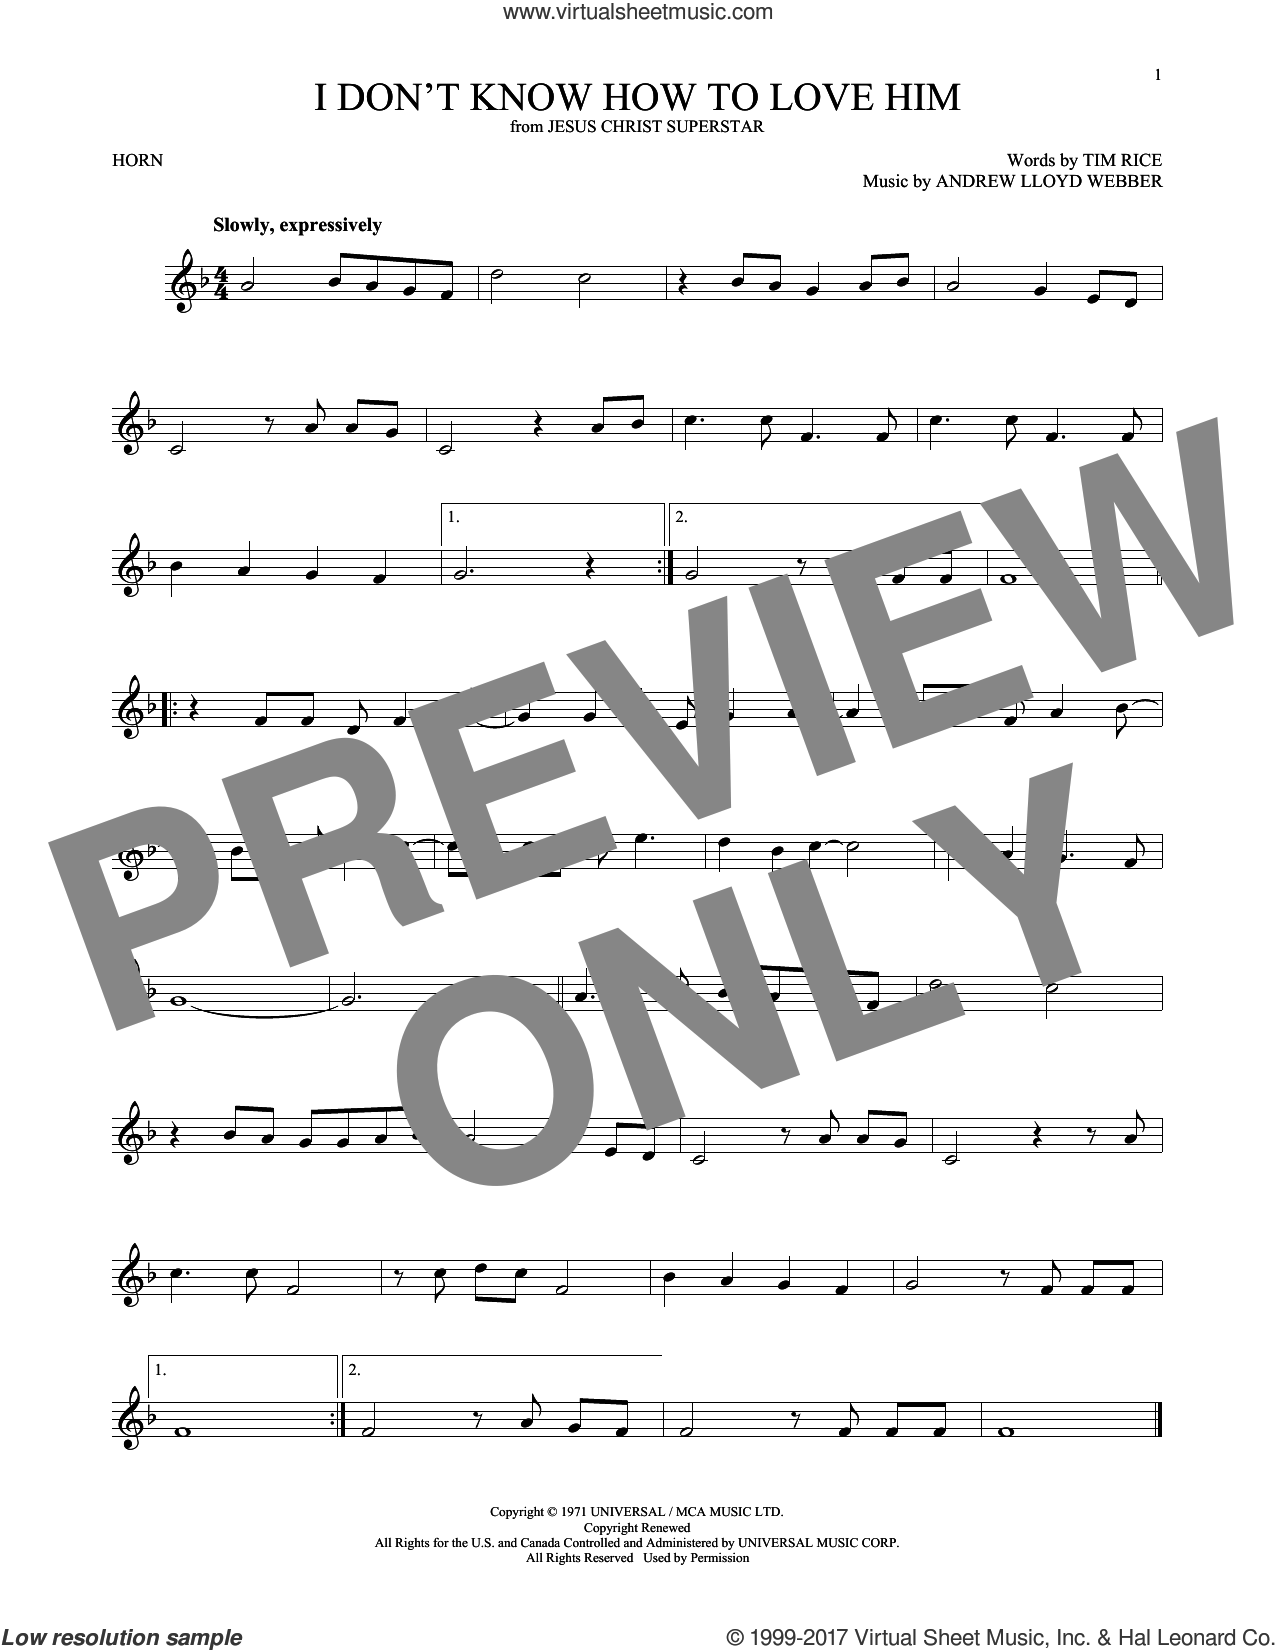 I Don't Know How To Love Him (from Jesus Christ Superstar) sheet music for horn solo by Andrew Lloyd Webber, Helen Reddy and Tim Rice, intermediate skill level